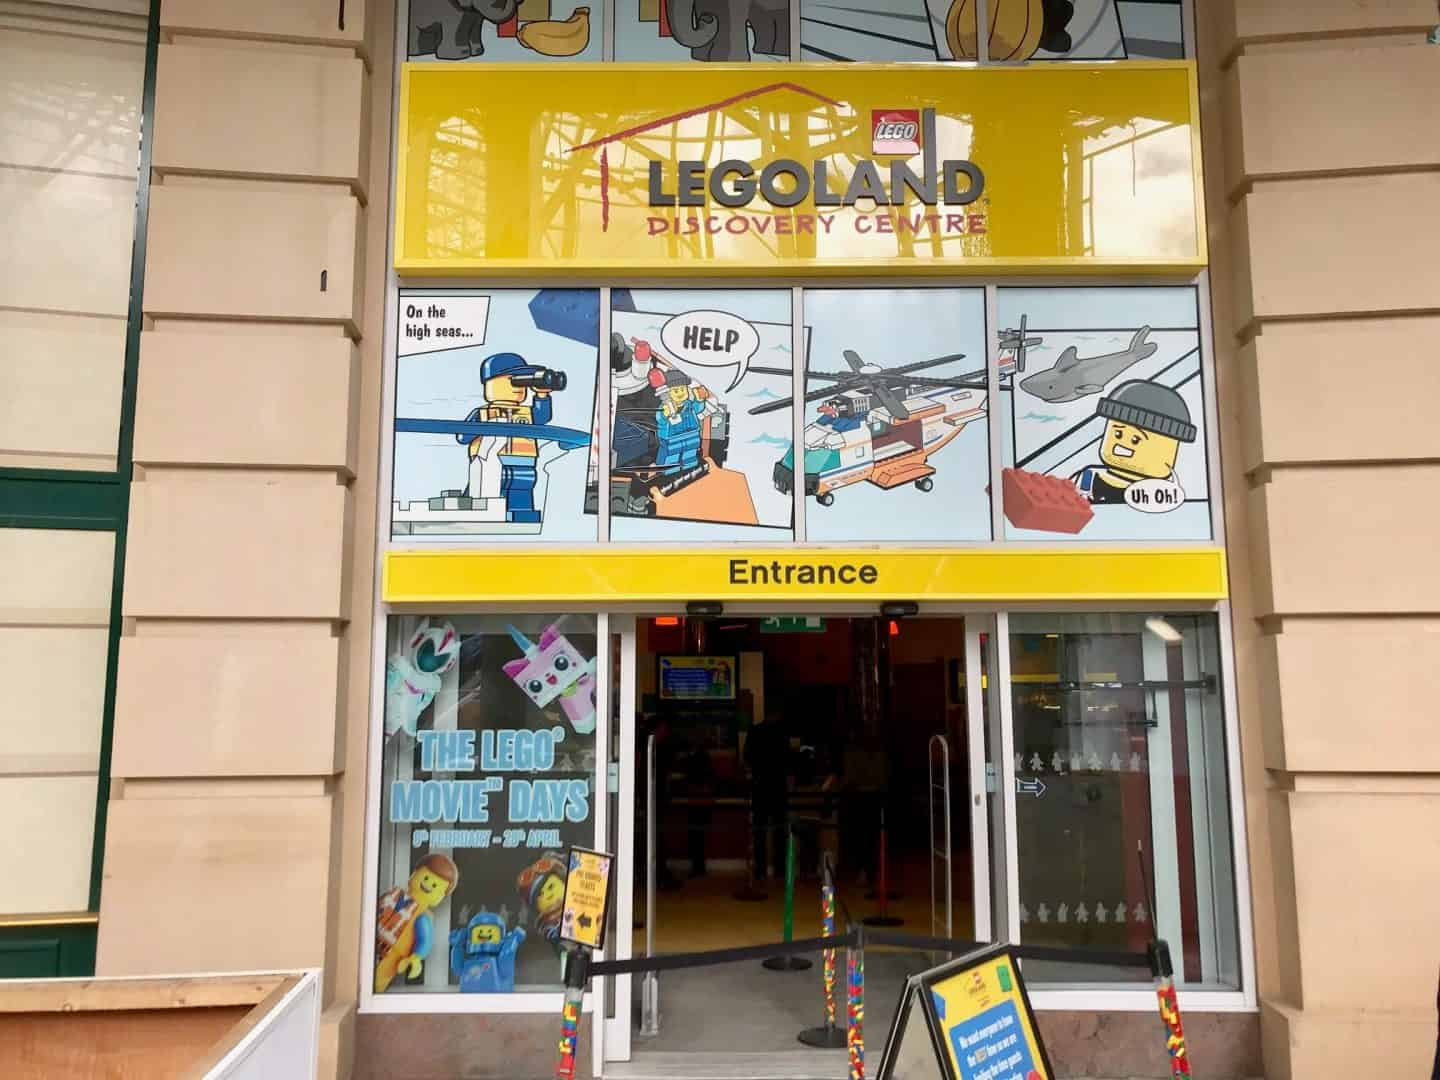 A Day Out In Manchester: Legoland Discovery Centre Review